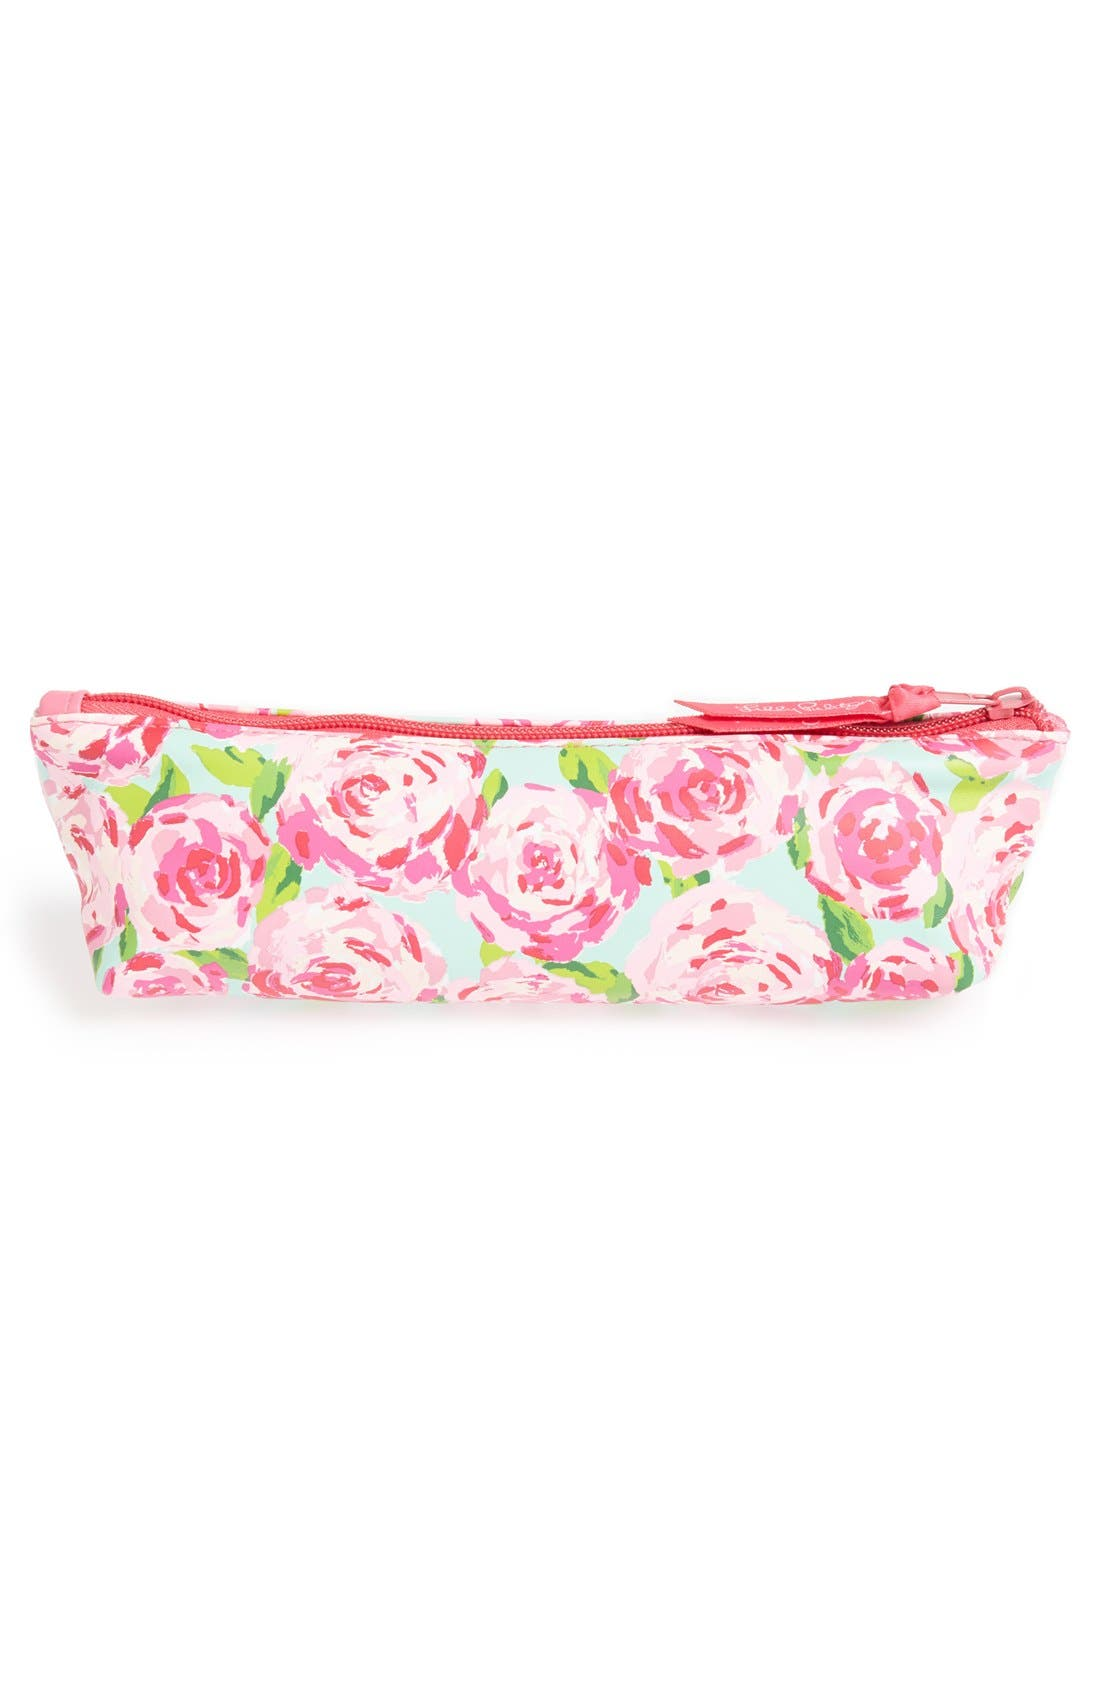 LILLY PULITZER<SUP>®</SUP>,                             Pencil Pouch,                             Alternate thumbnail 2, color,                             440